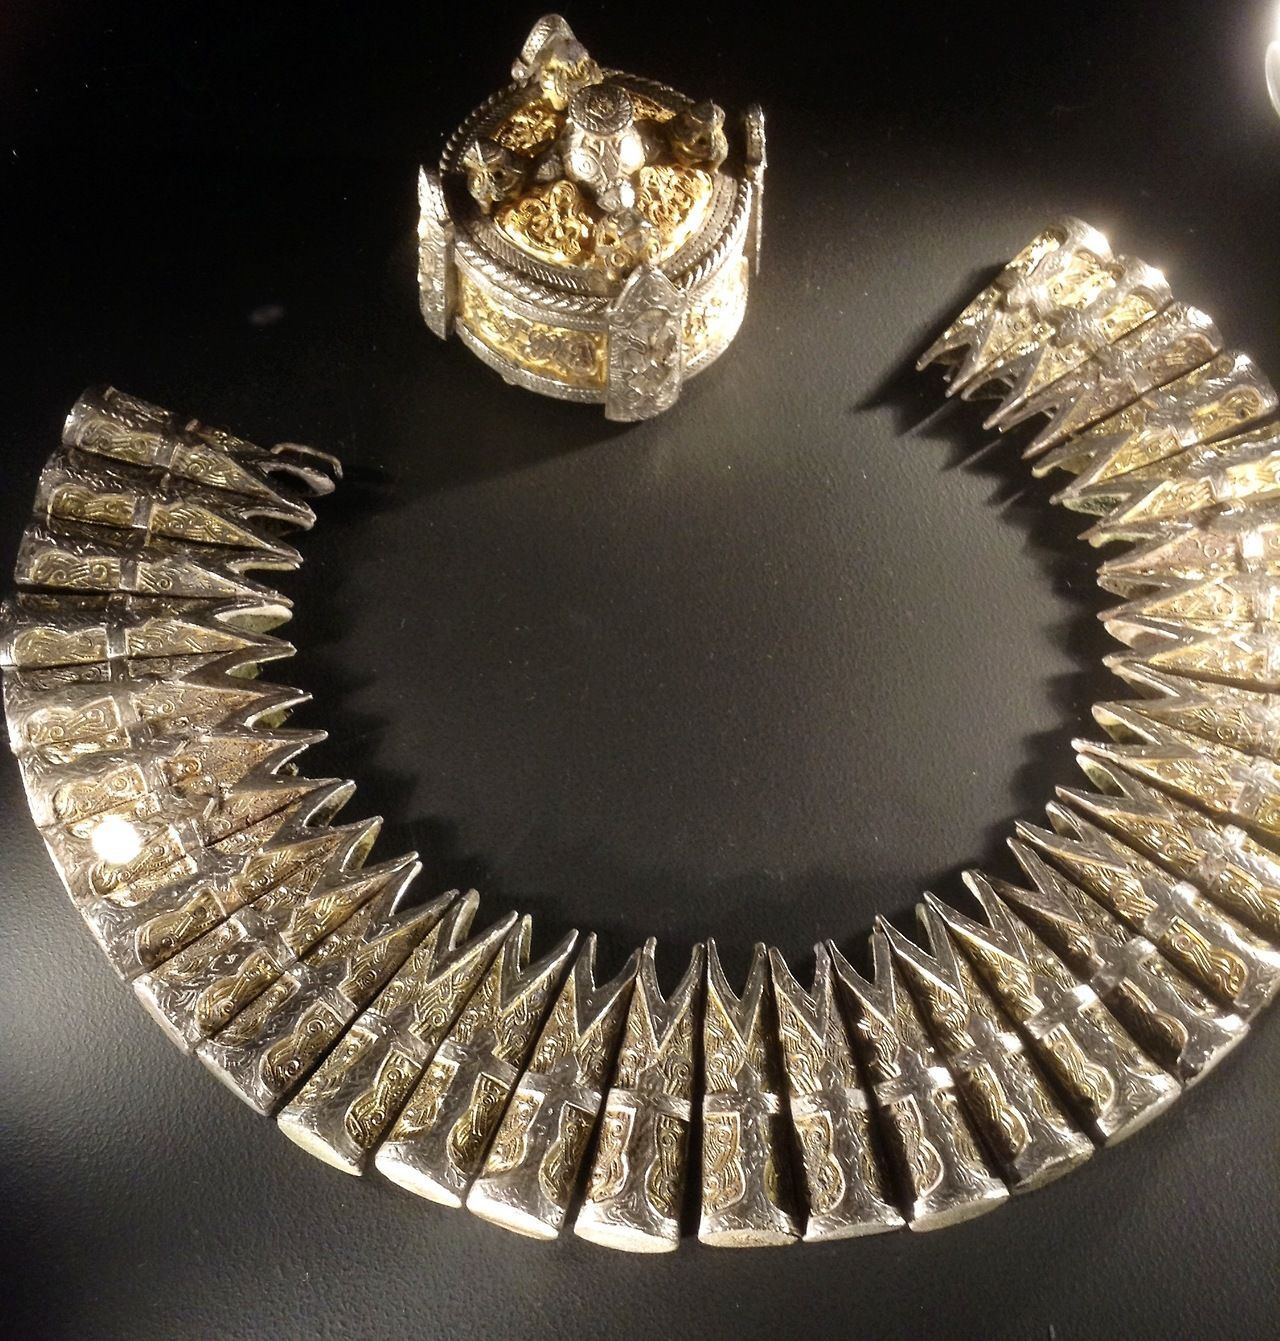 Viking Jewelry Currently On Display At The National Museum Of Scotland Viking Jewelry Ancient Jewelry Medieval Jewelry